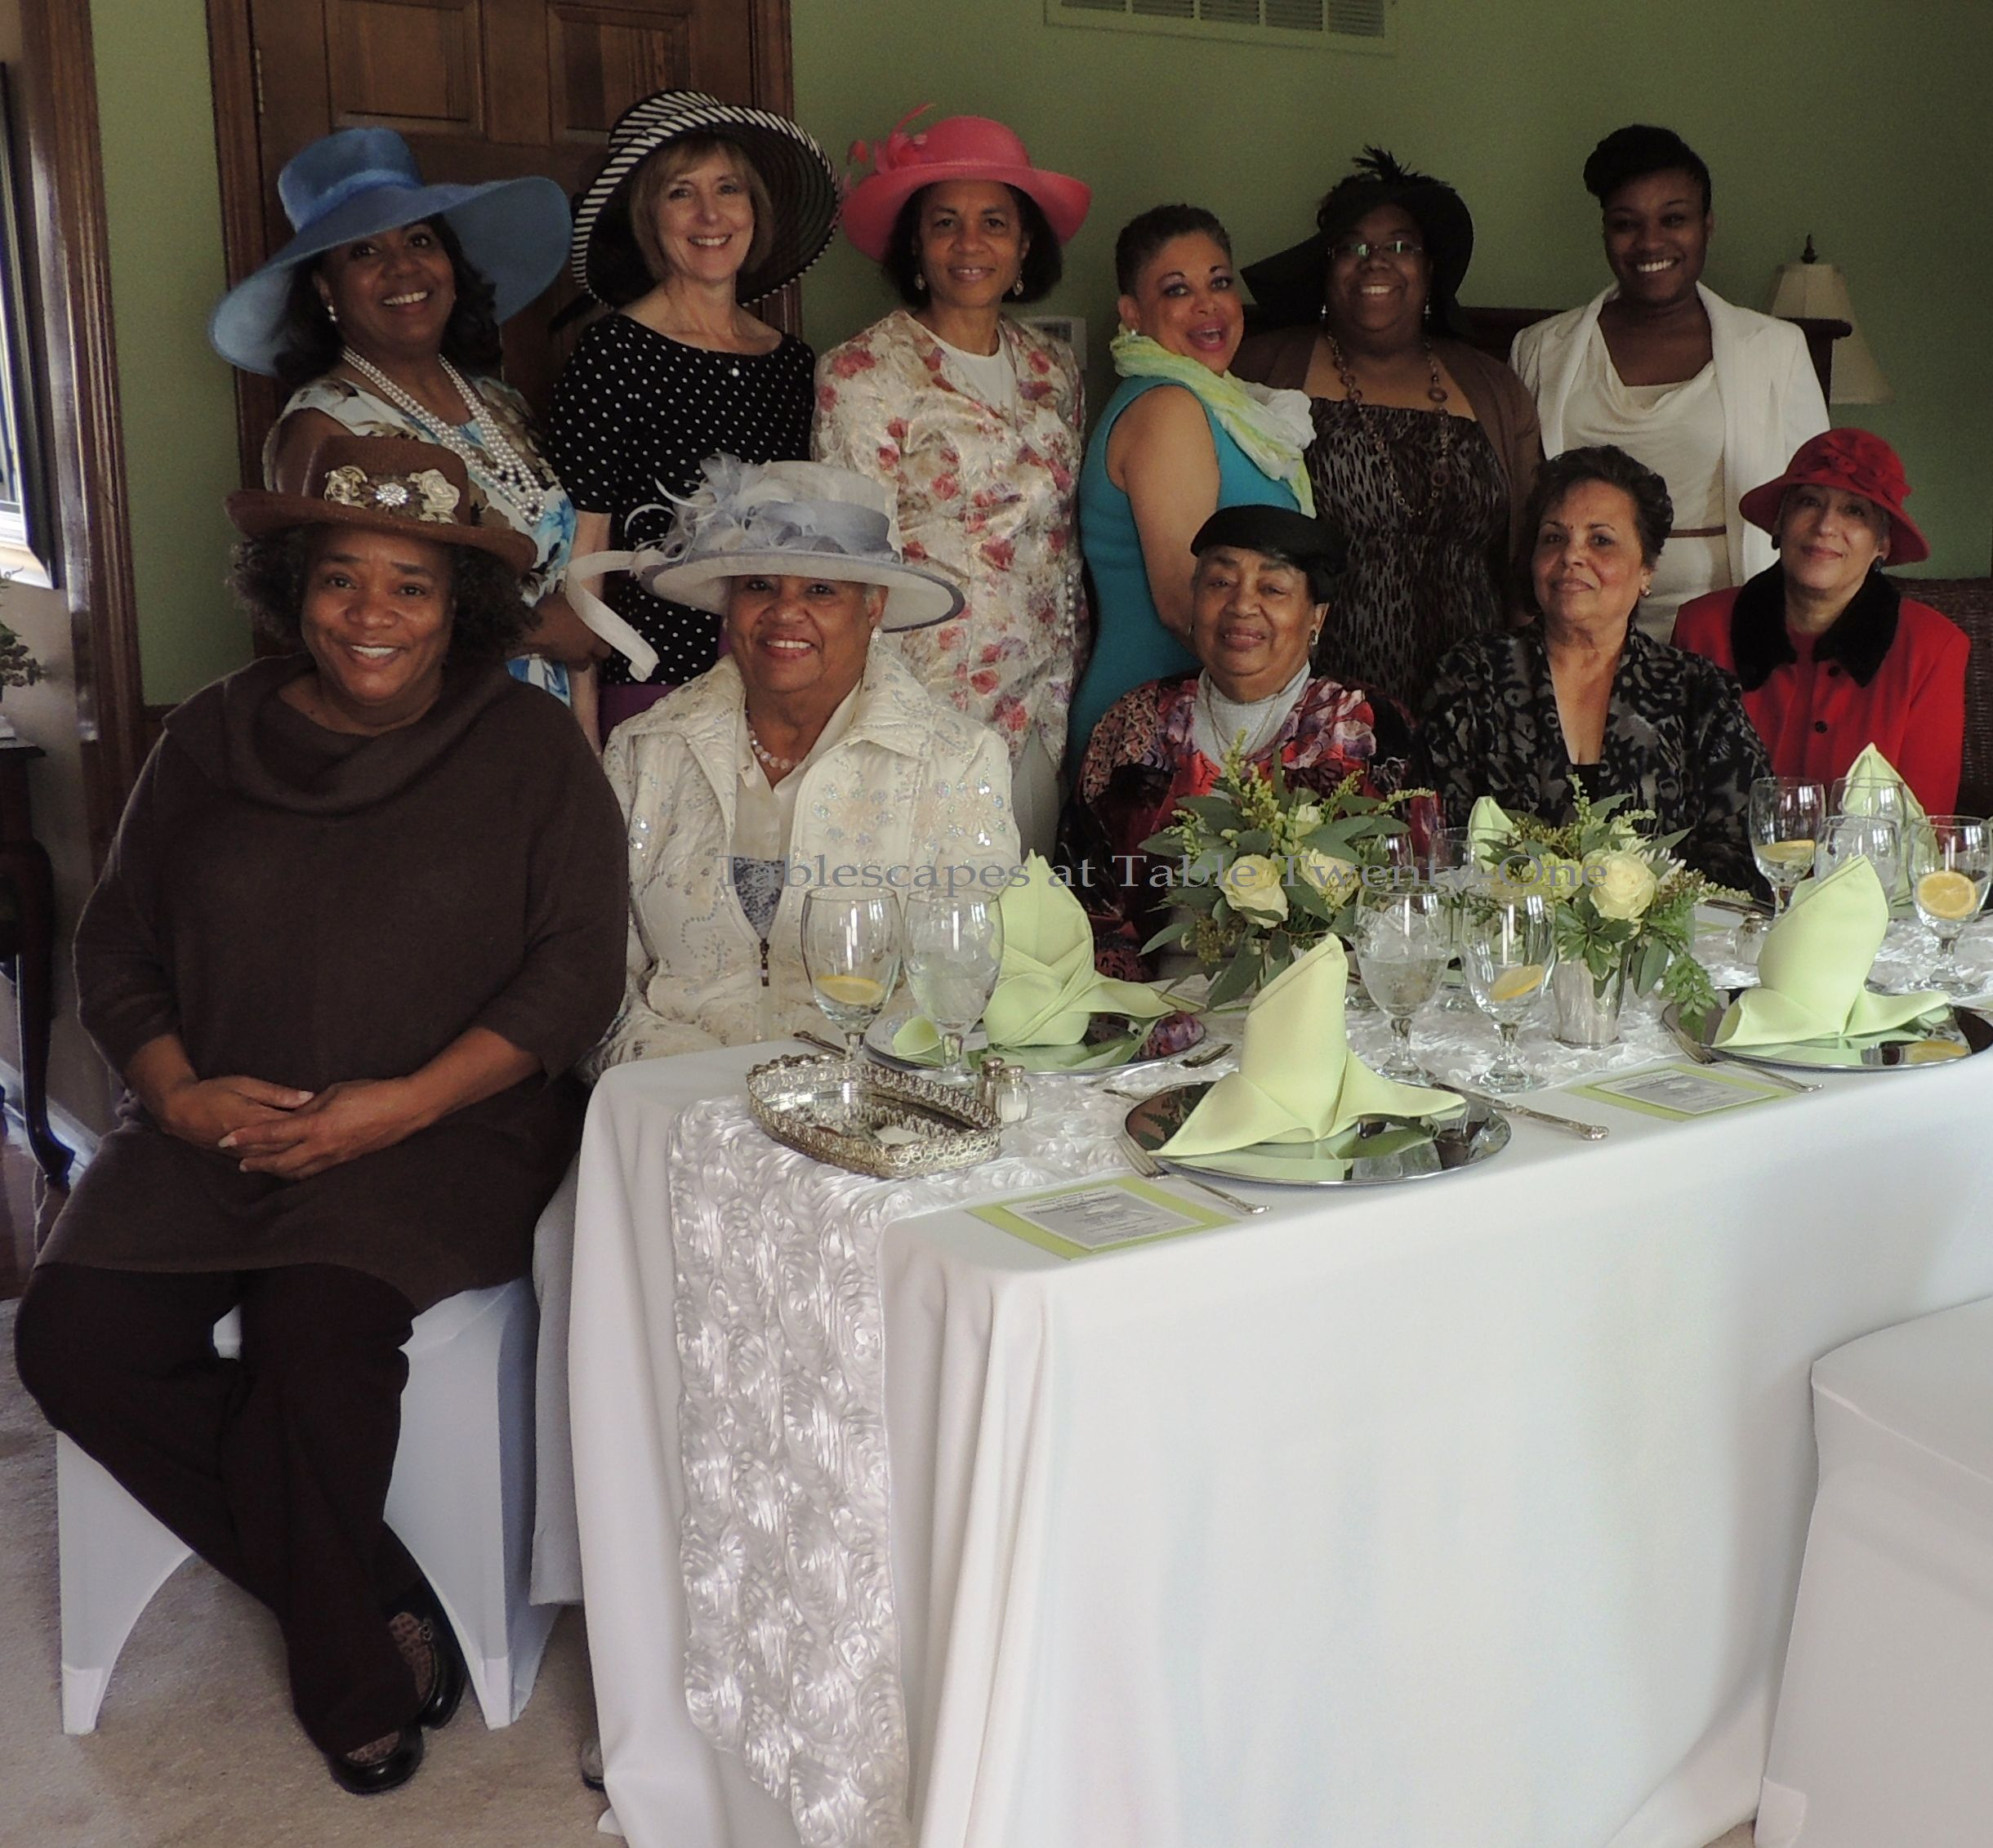 Tablescapes at Table Twenty-One, www.tabletwentyone.wordpress.com: Celebrating 85 Years of Fabulous - Group photo at Mom's 85th Birthday luncheon